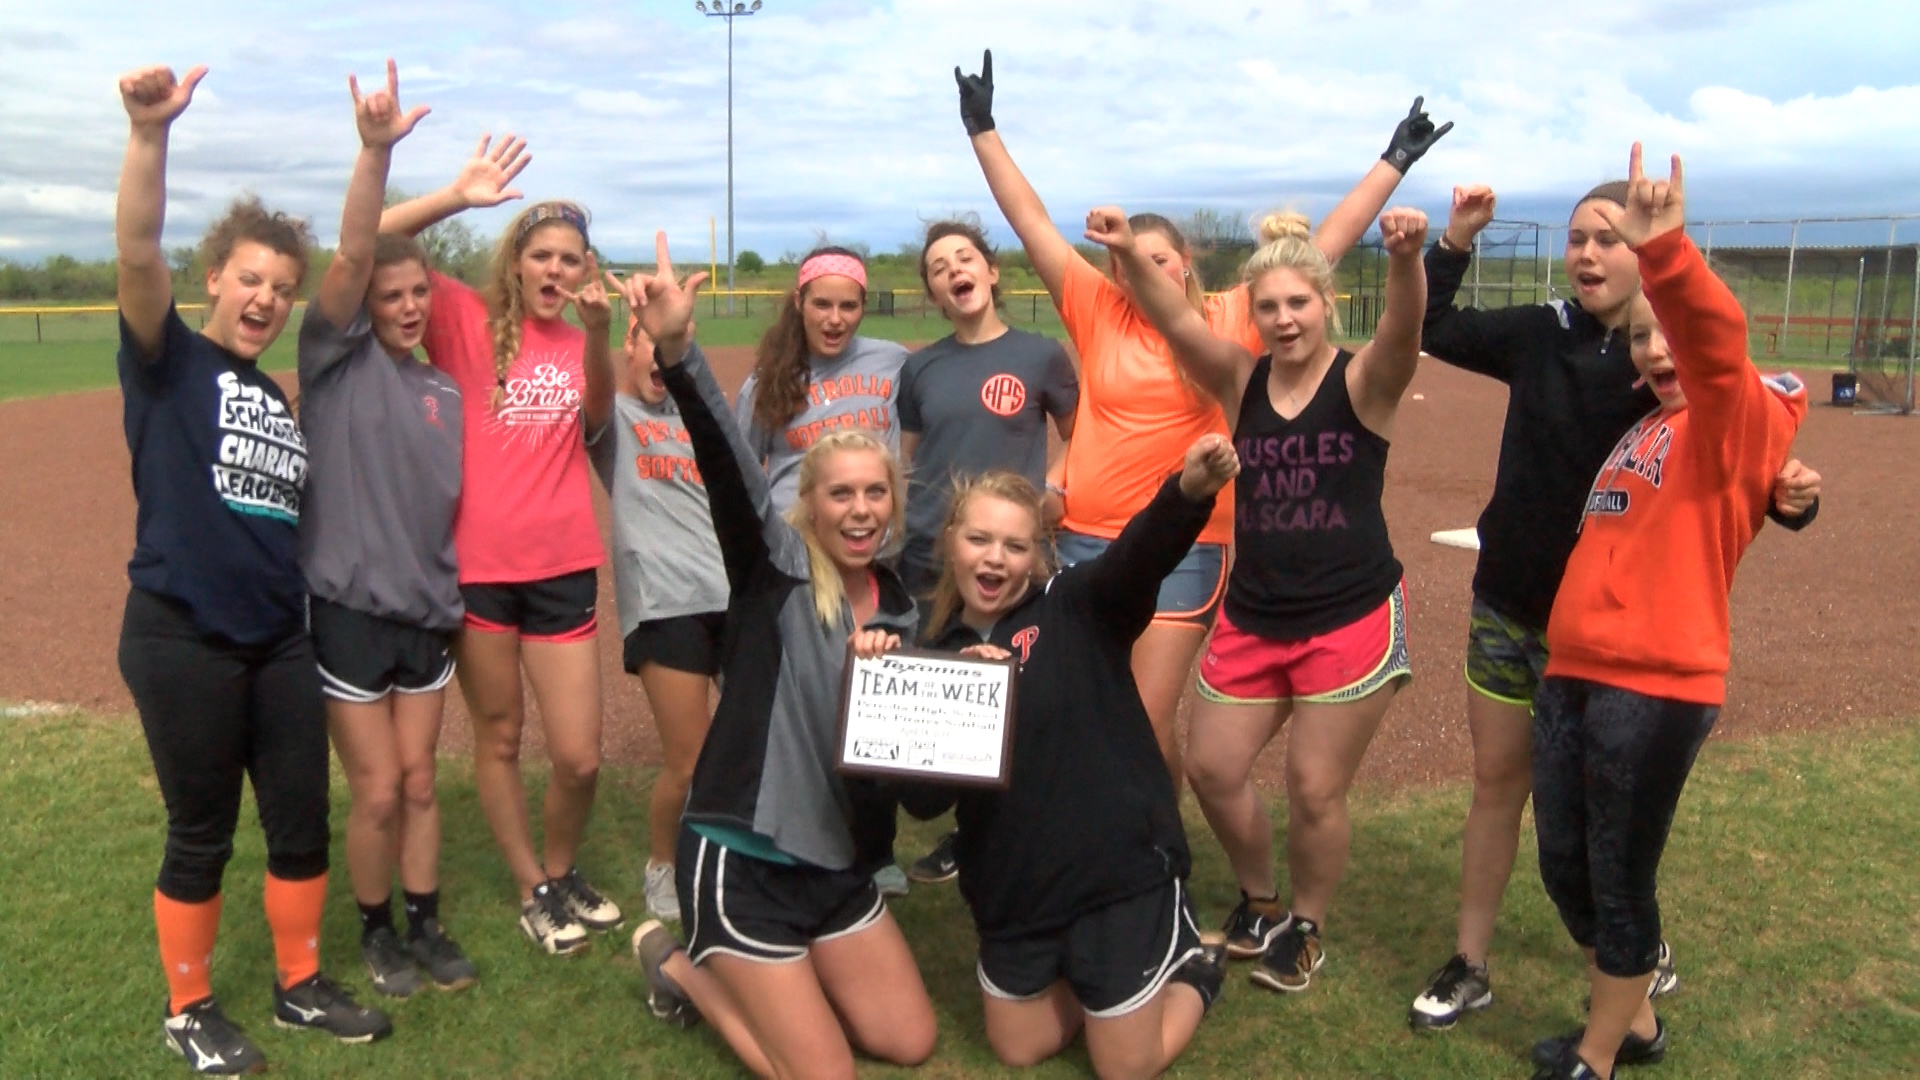 TOTW PETROLIA LADY PIRATES SB.Still001_1460432043233.jpg